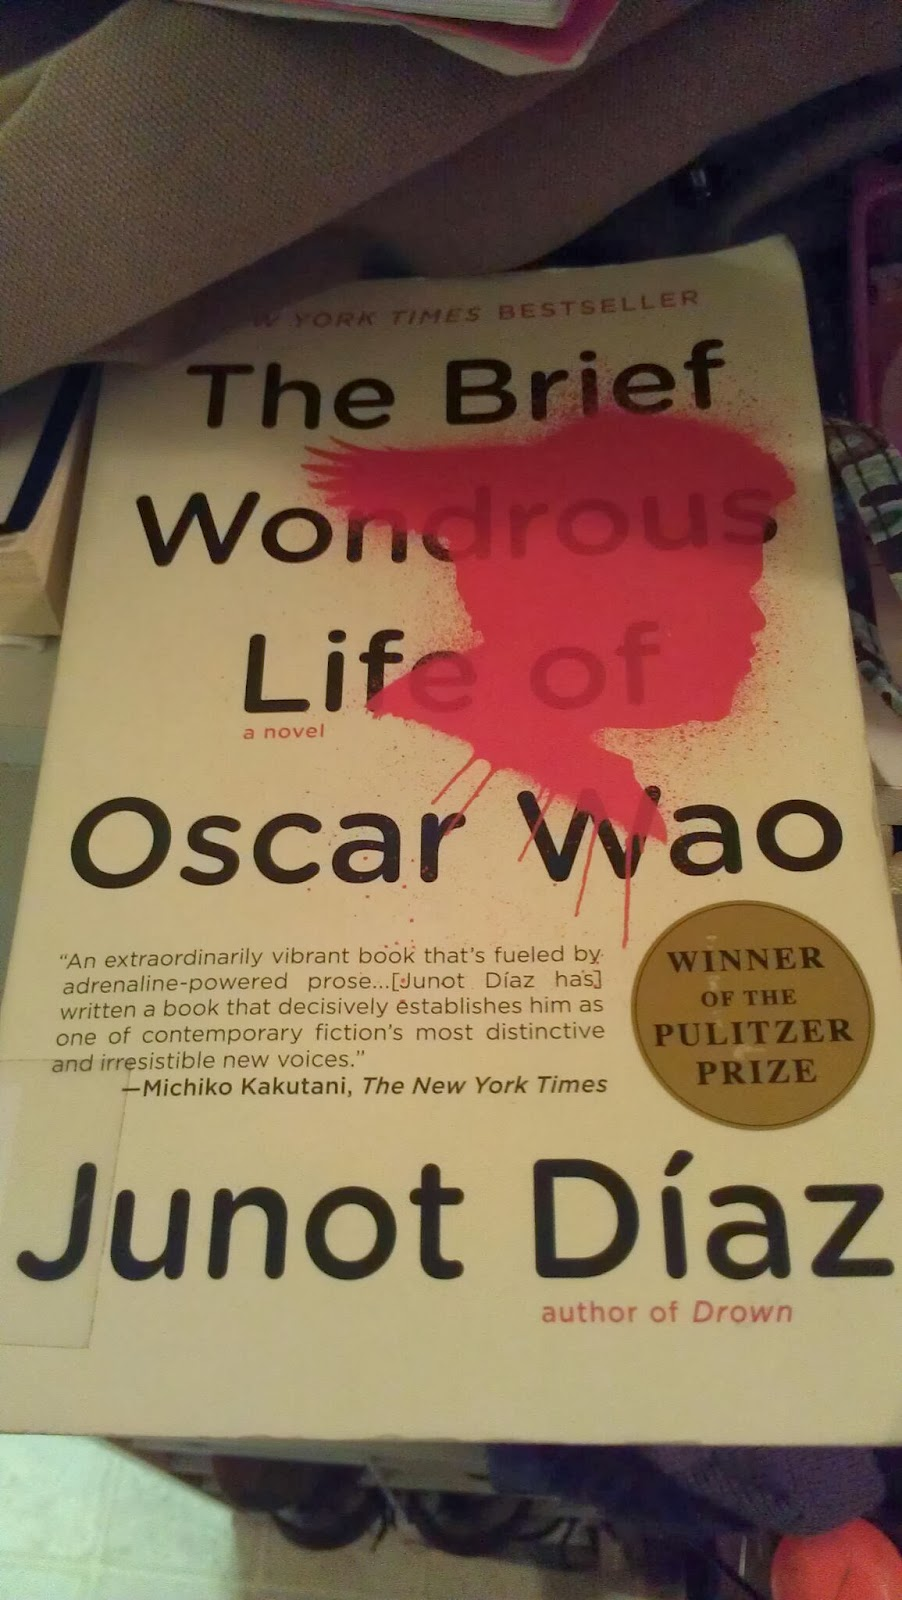 the brief wondrous life of wao The brief wondrous life of oscar wao  jul 15, 2010 07/10 by díaz, junot, 1968-texts eye 106 favorite 1 comment 0  new york public library 1,153 12k the life.